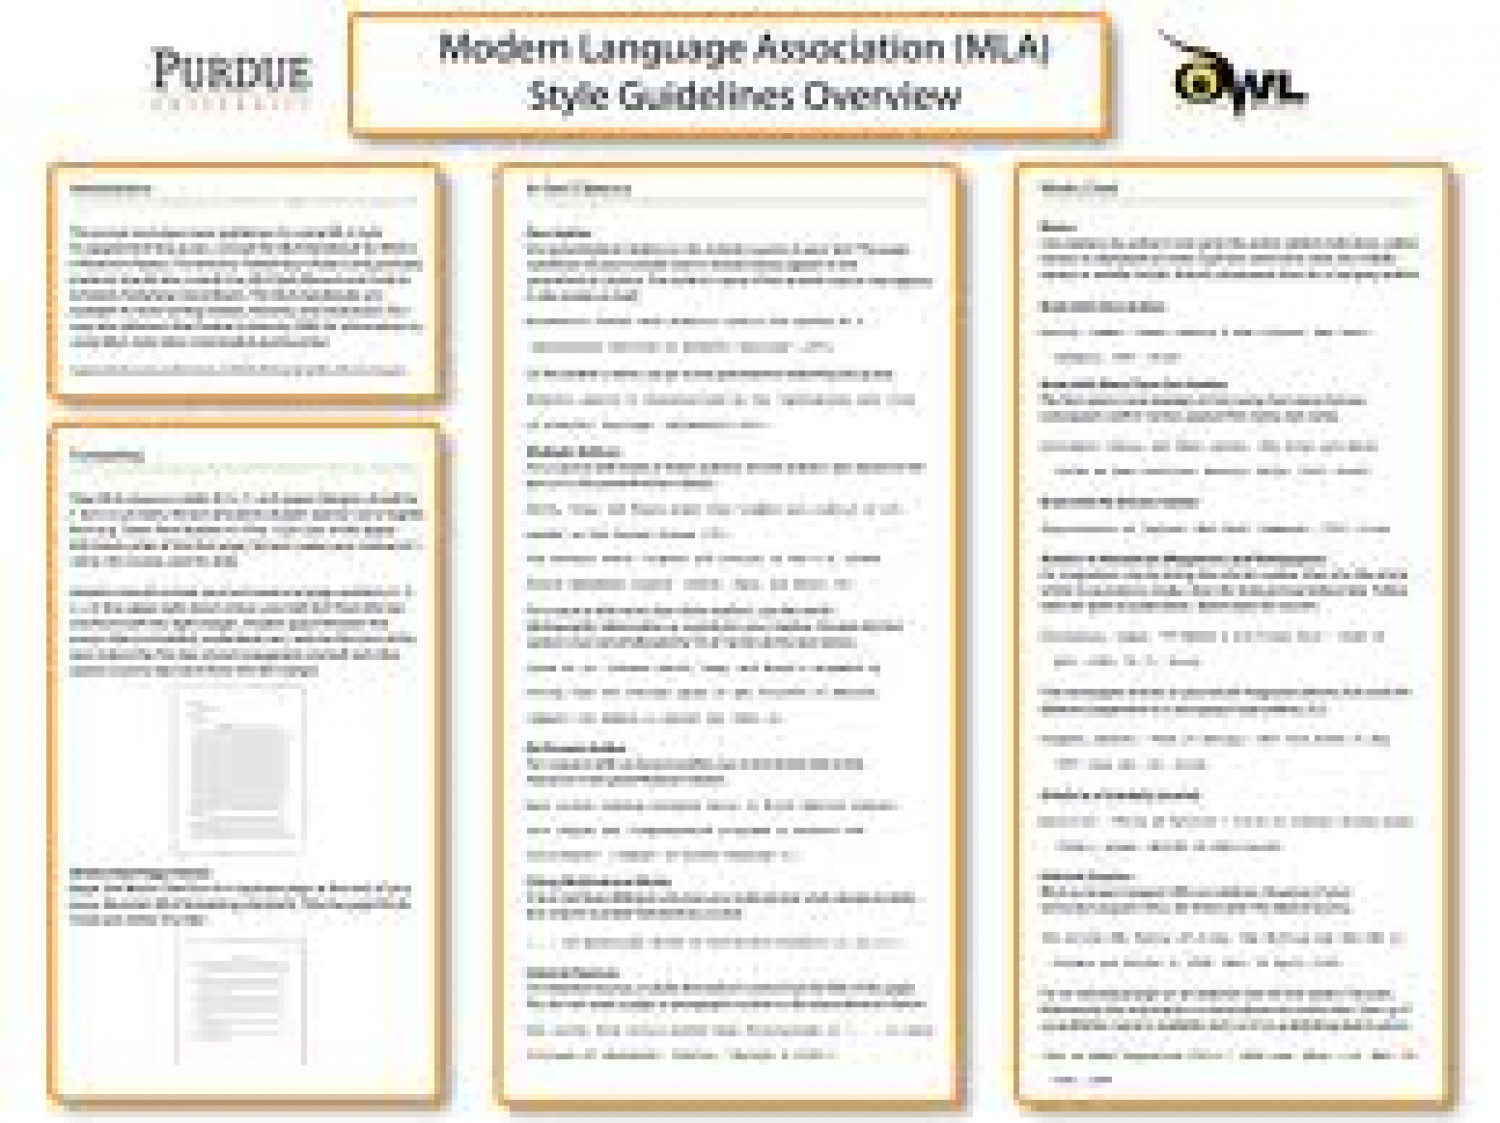 citation in mla style The type of bibliography you create will depend largely on the type of citation or writing style that you are following for examples purposes, we will explore apa vs mla the two are similar in many ways, but there are some major differences as well.